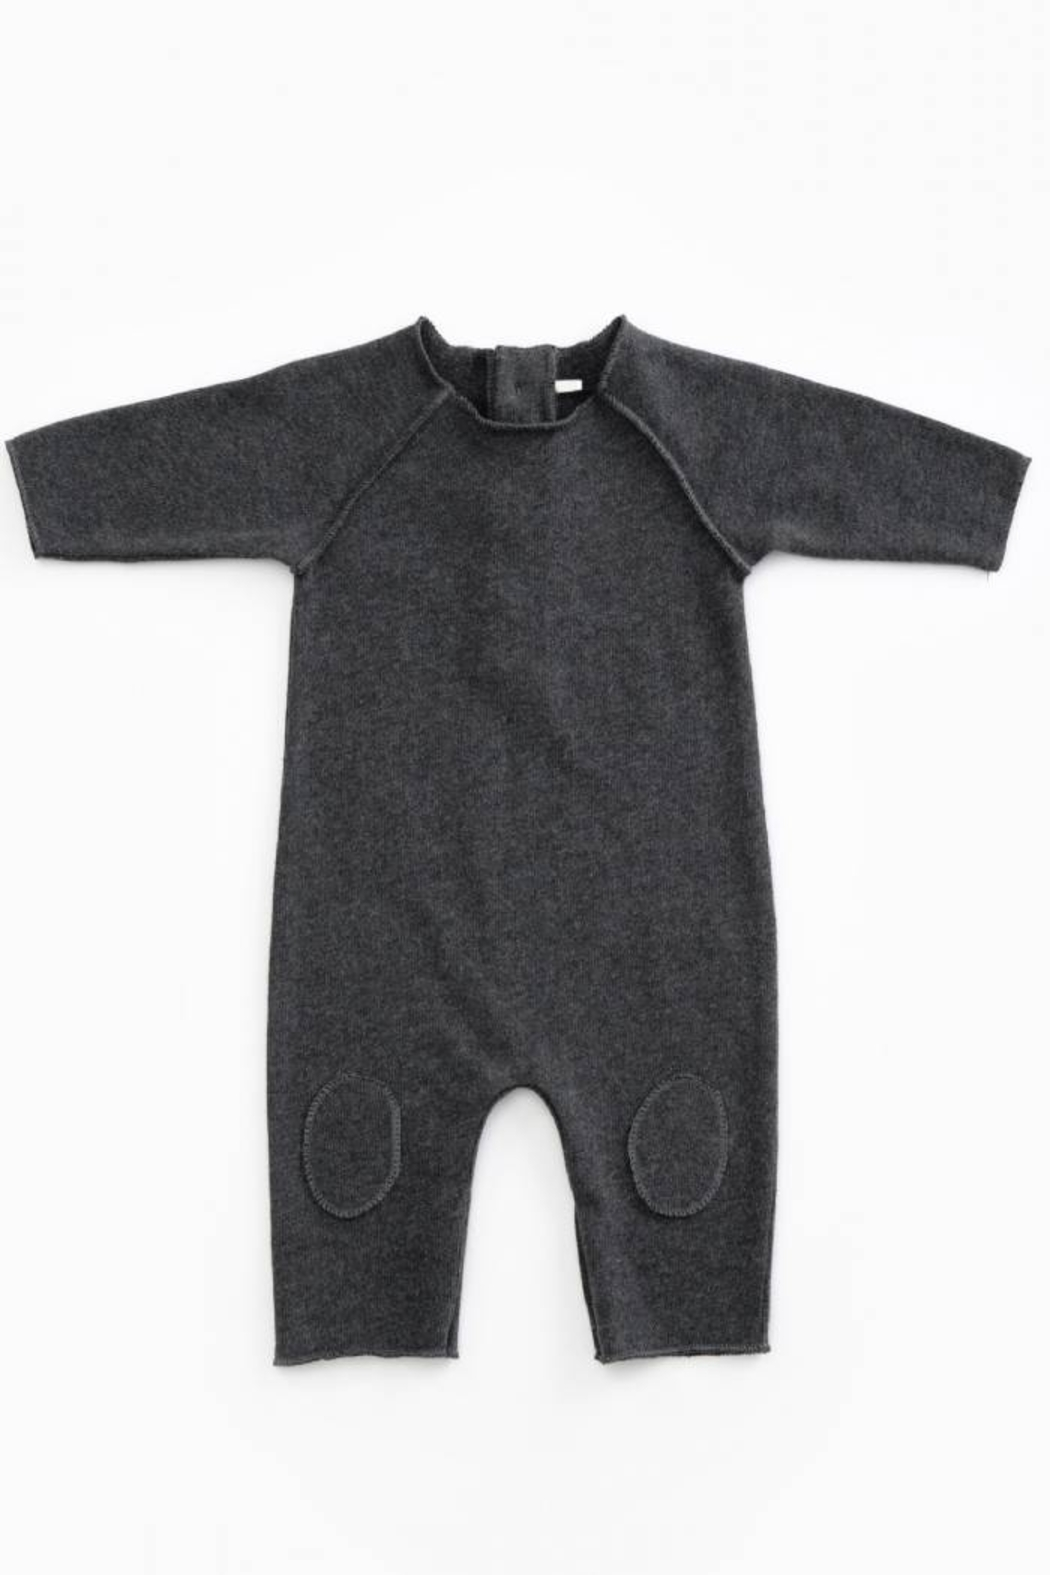 Play Up Mono Jersey Stitch Organic Cotton Baby Jumpsuit with knee Pads Woodwork - Front Cropped Image